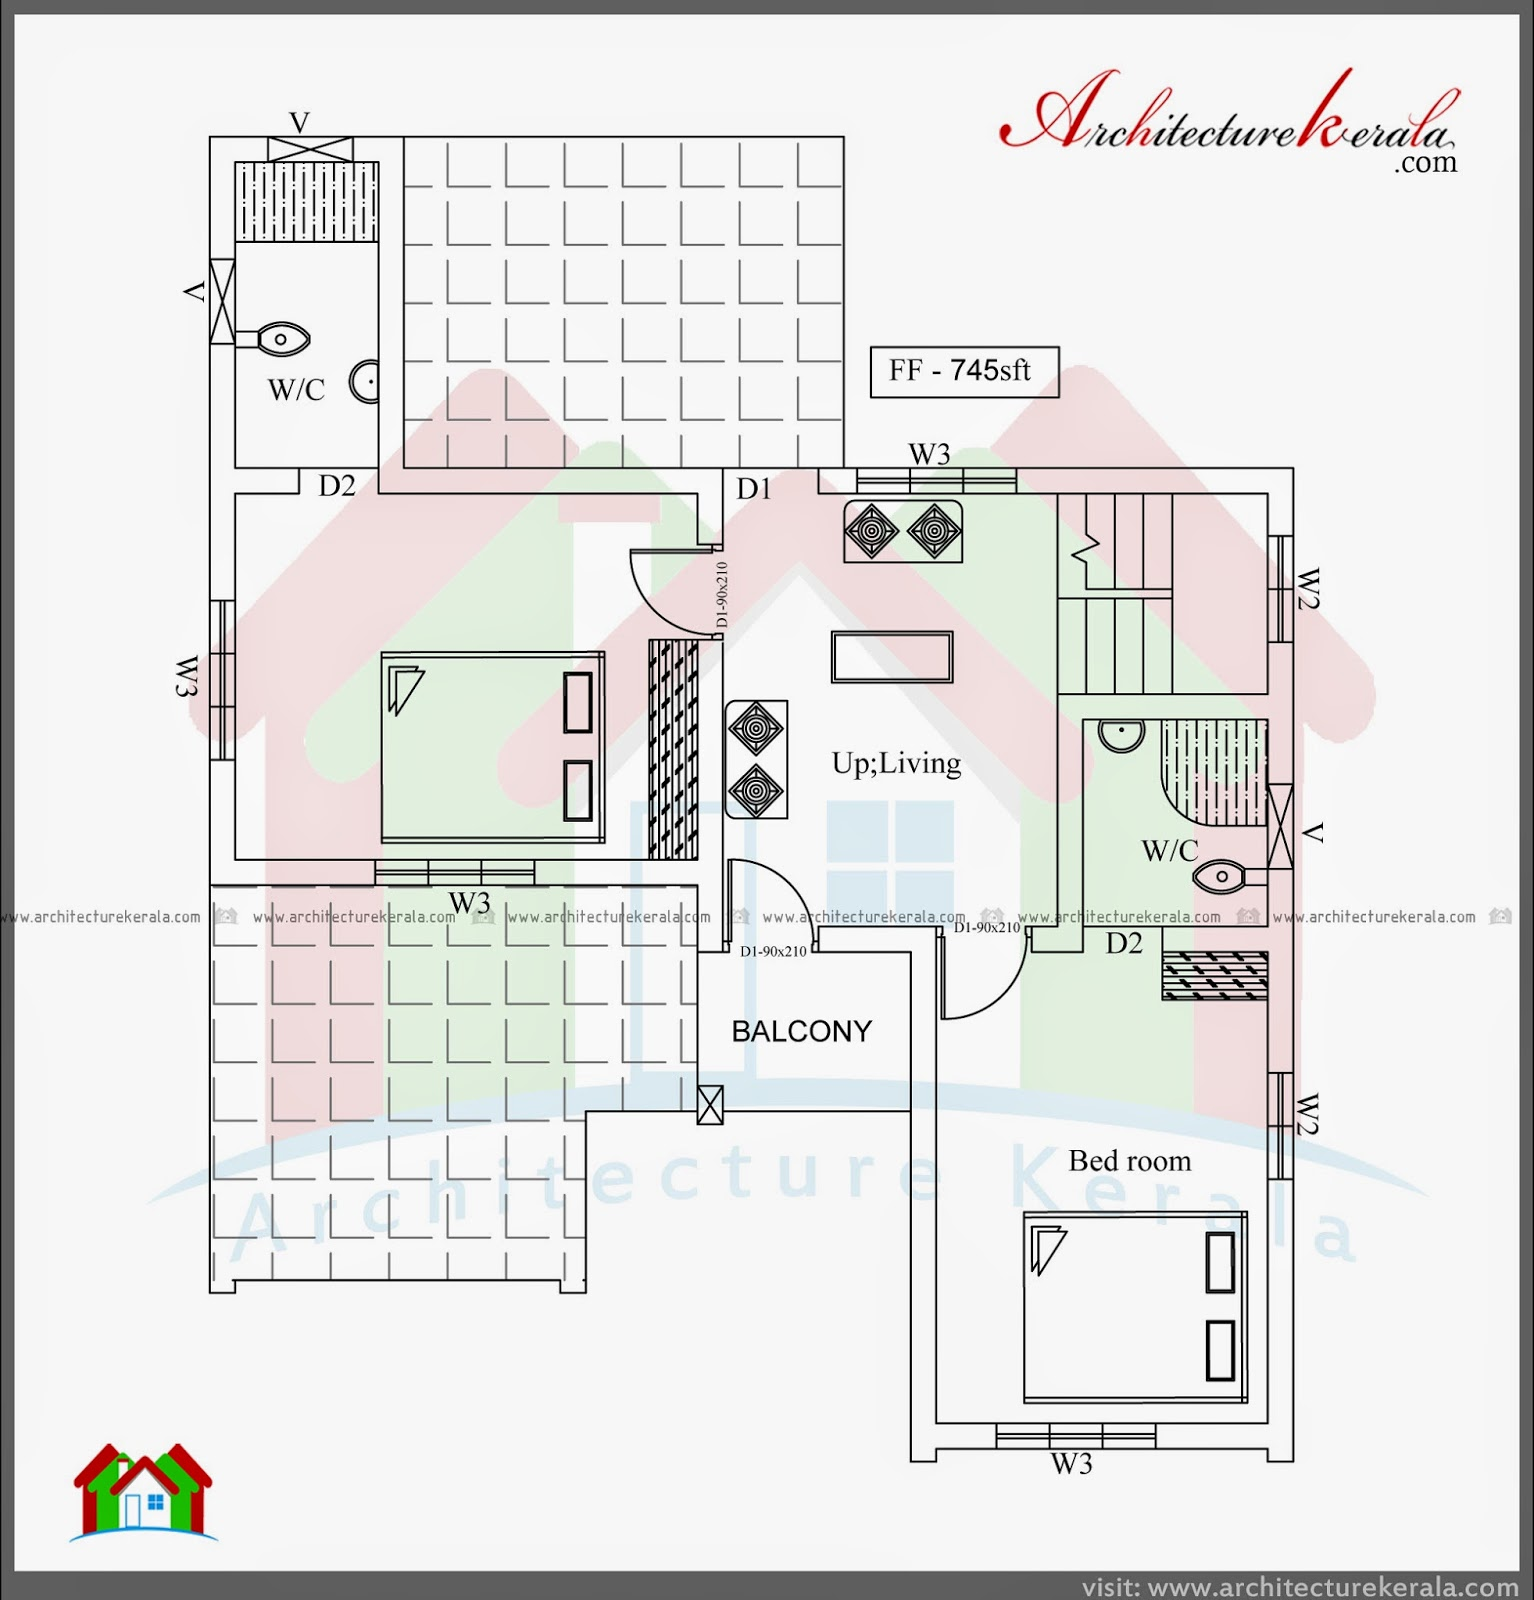 Three bedroom two storey house plan architecture kerala Two story house floor plans